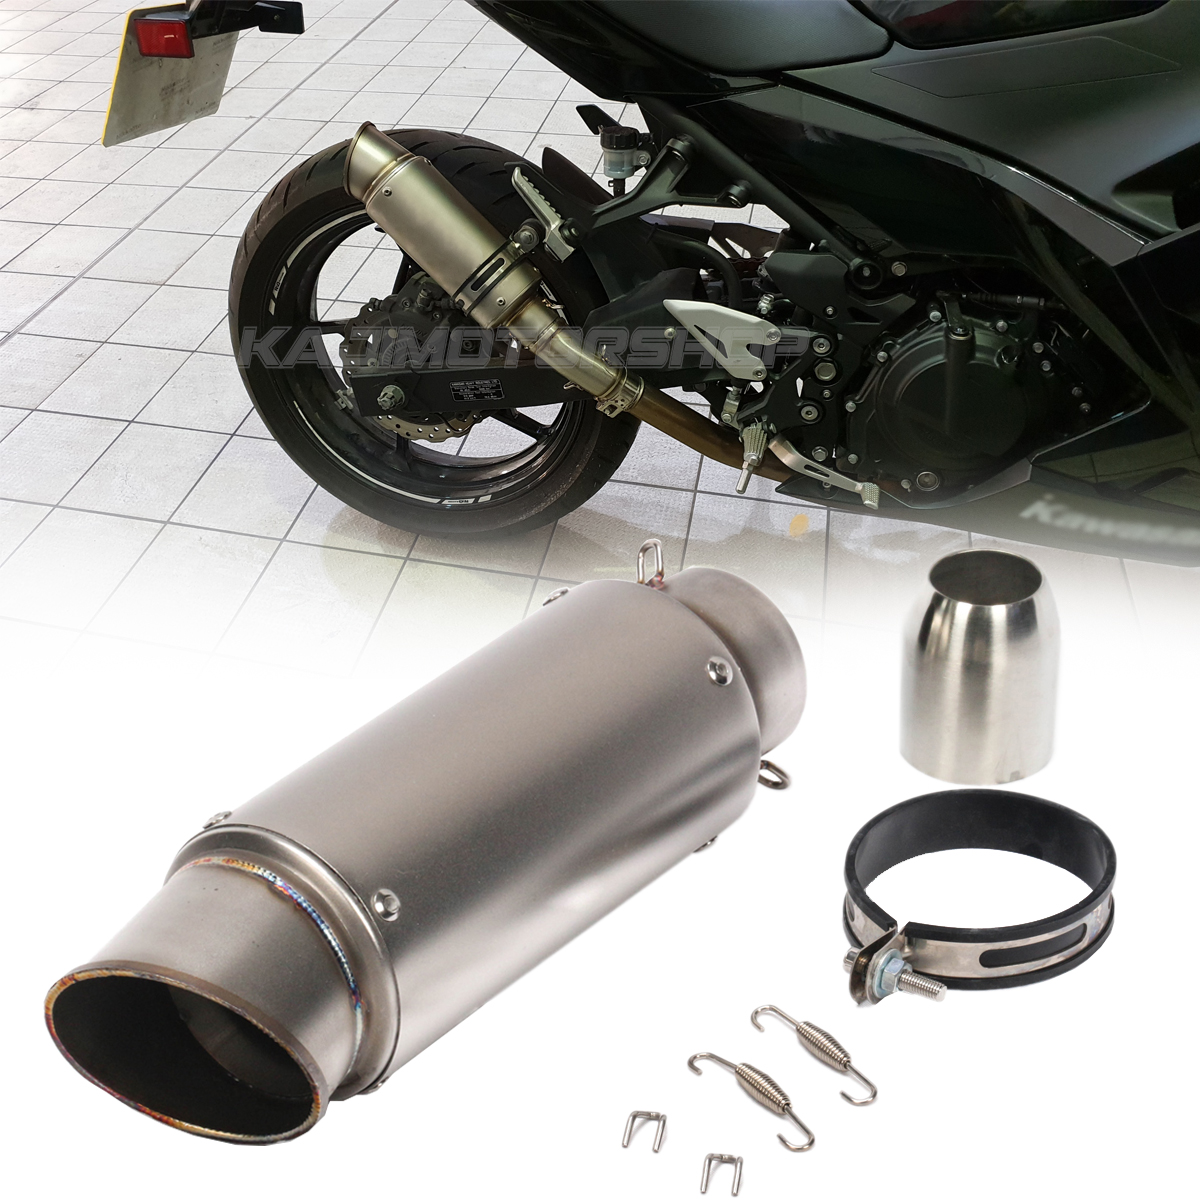 1 Set New Motorcycle Exhaust Muffler Pipe Silencer Slip on for Yamaha YZF-R6